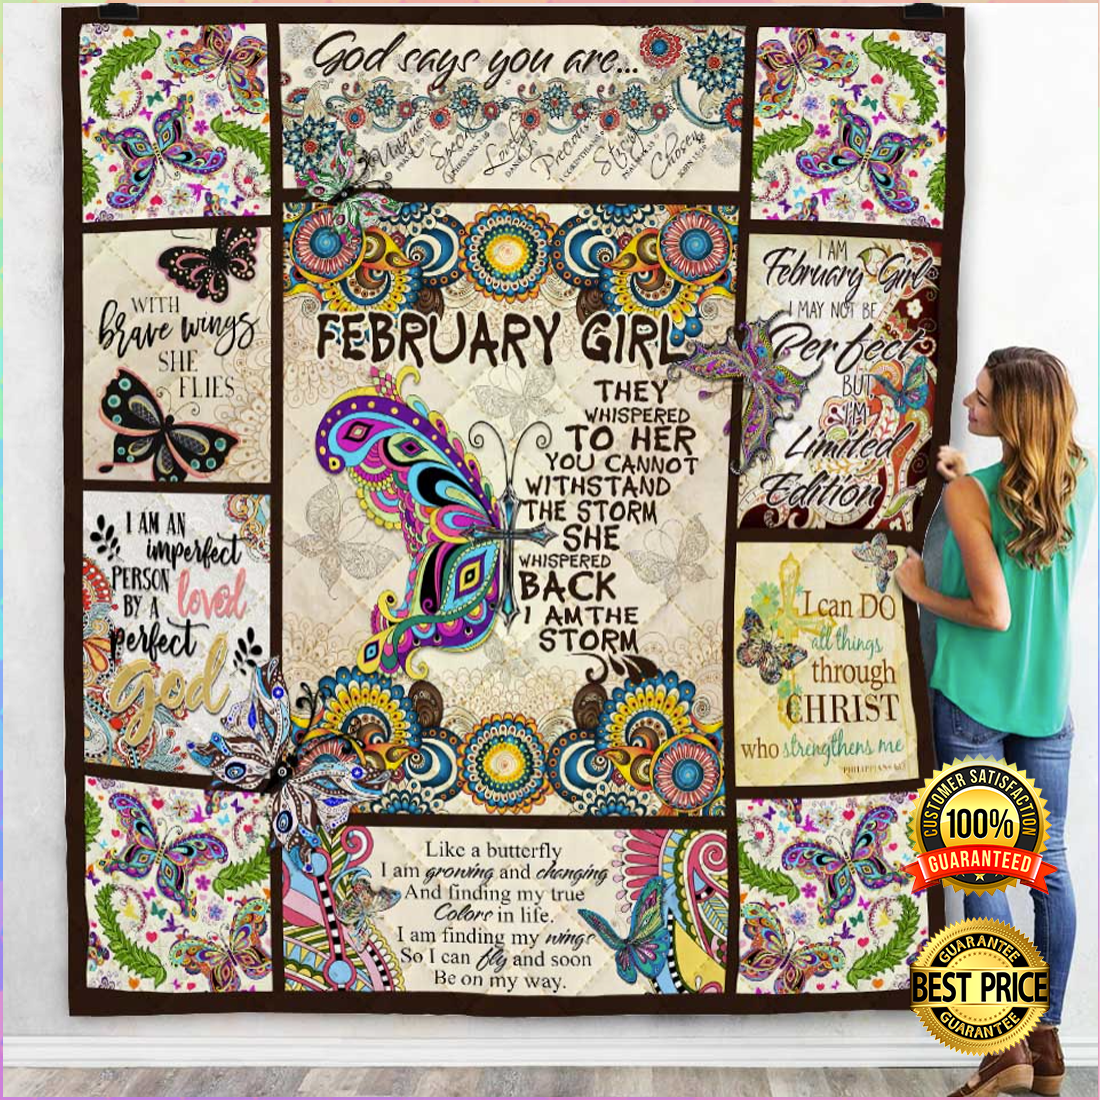 [ Hot ] FEBRUARY GIRL THEY WHISPERED TO HER YOU CANNOT WITHSTAND THE STORM QUILT